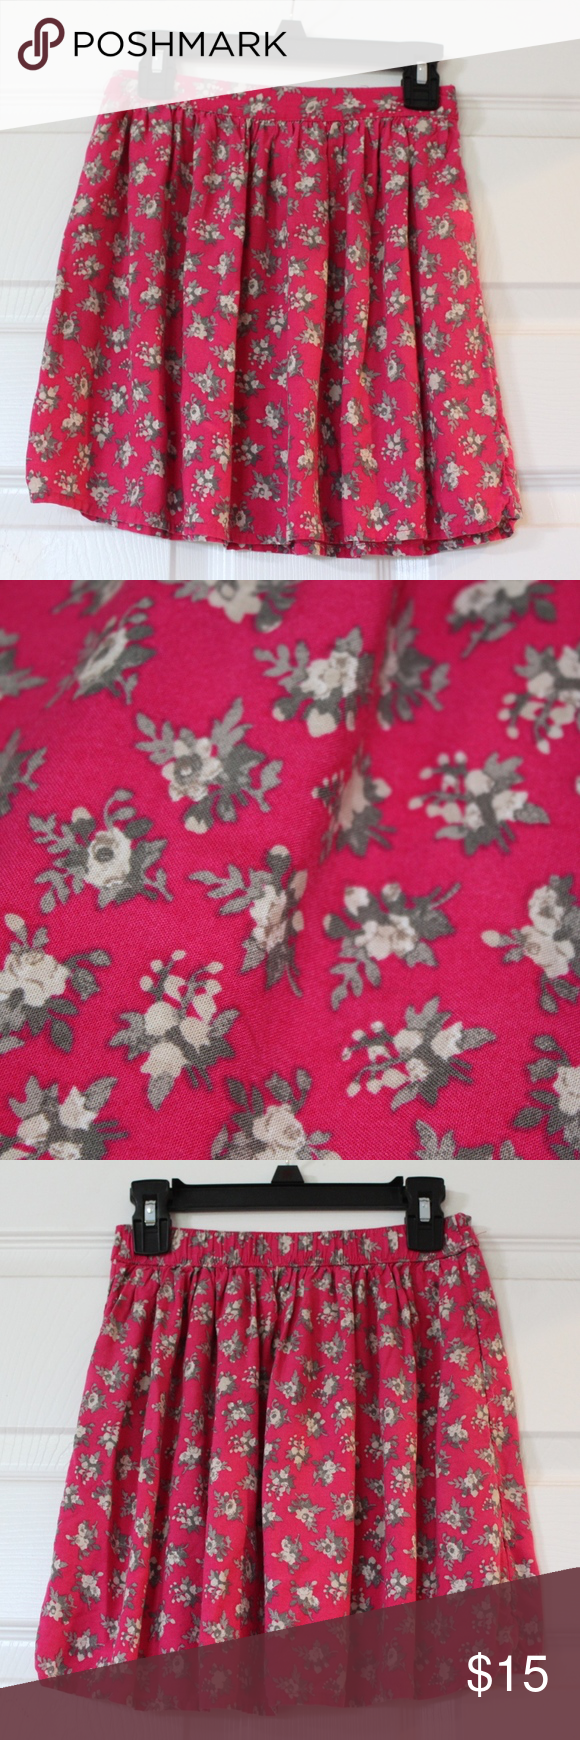 2019 year for women- Skirt Floral abercrombie